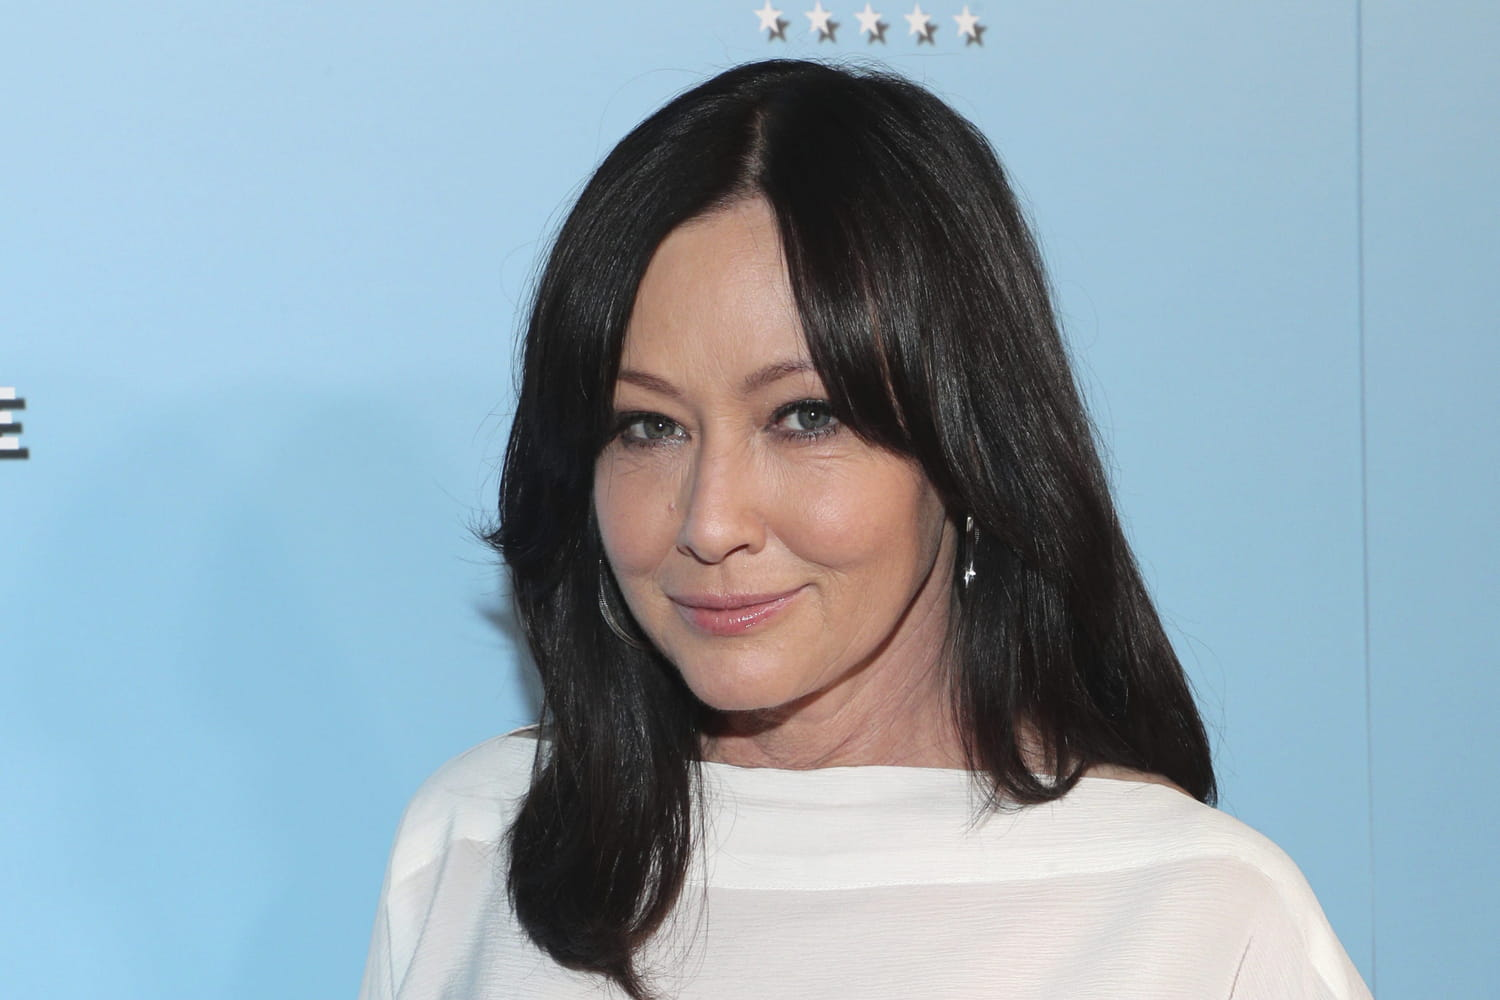 Shannen Doherty: cancer, Charmed, Beverly Hills... Biographie de l'actrice